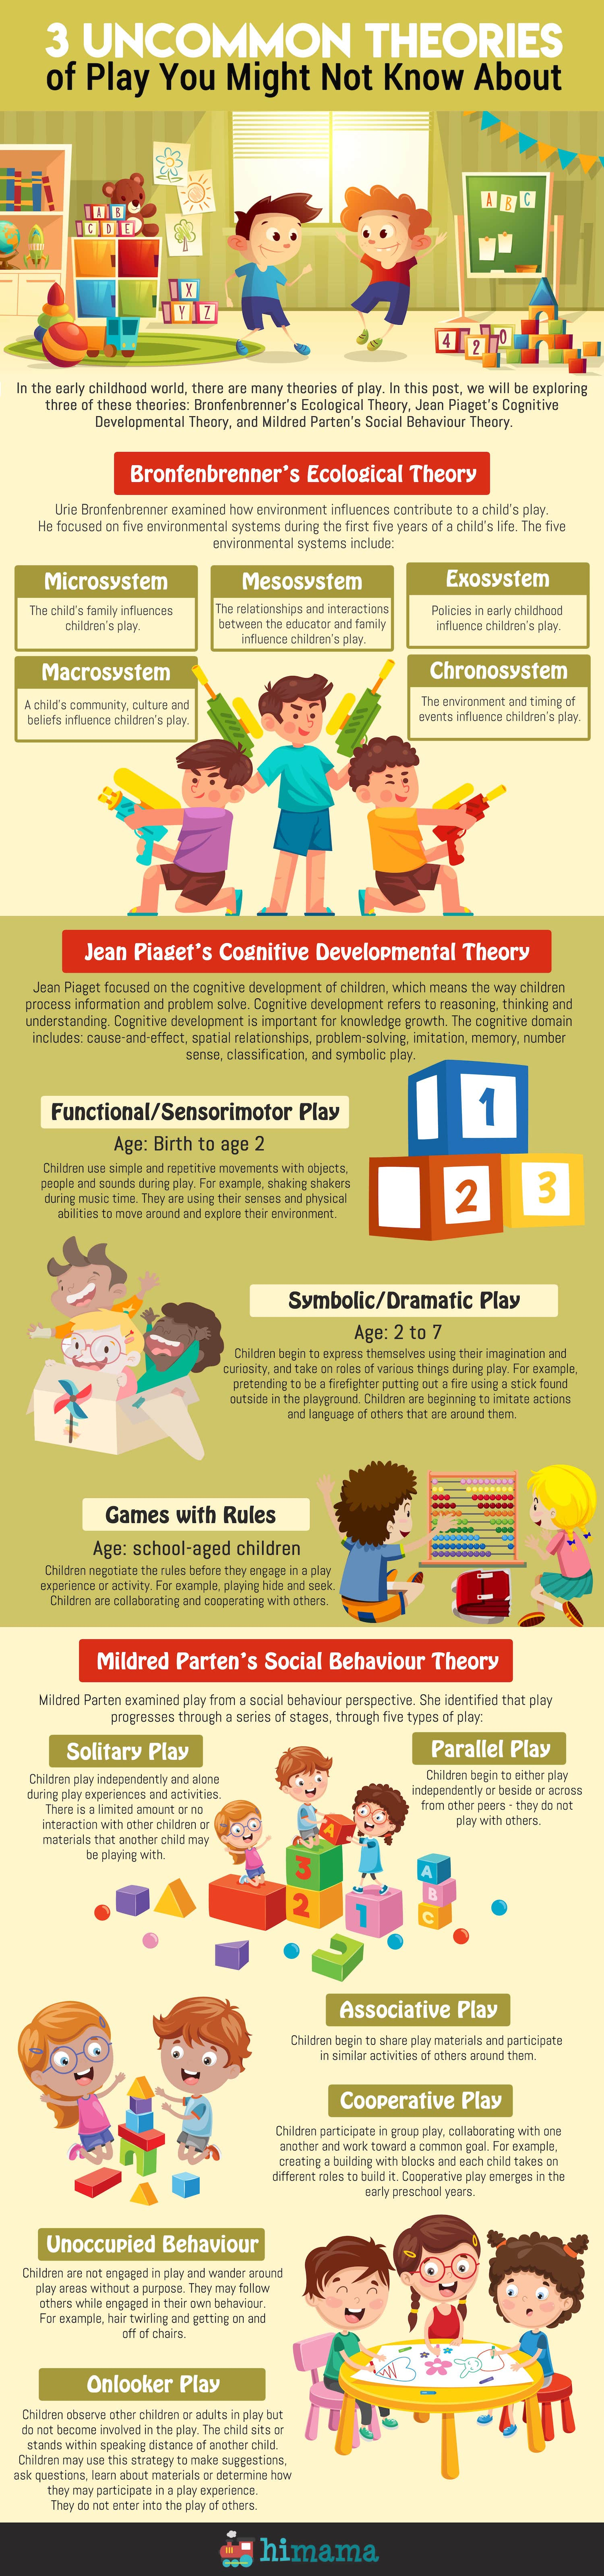 3 uncommon theories of play